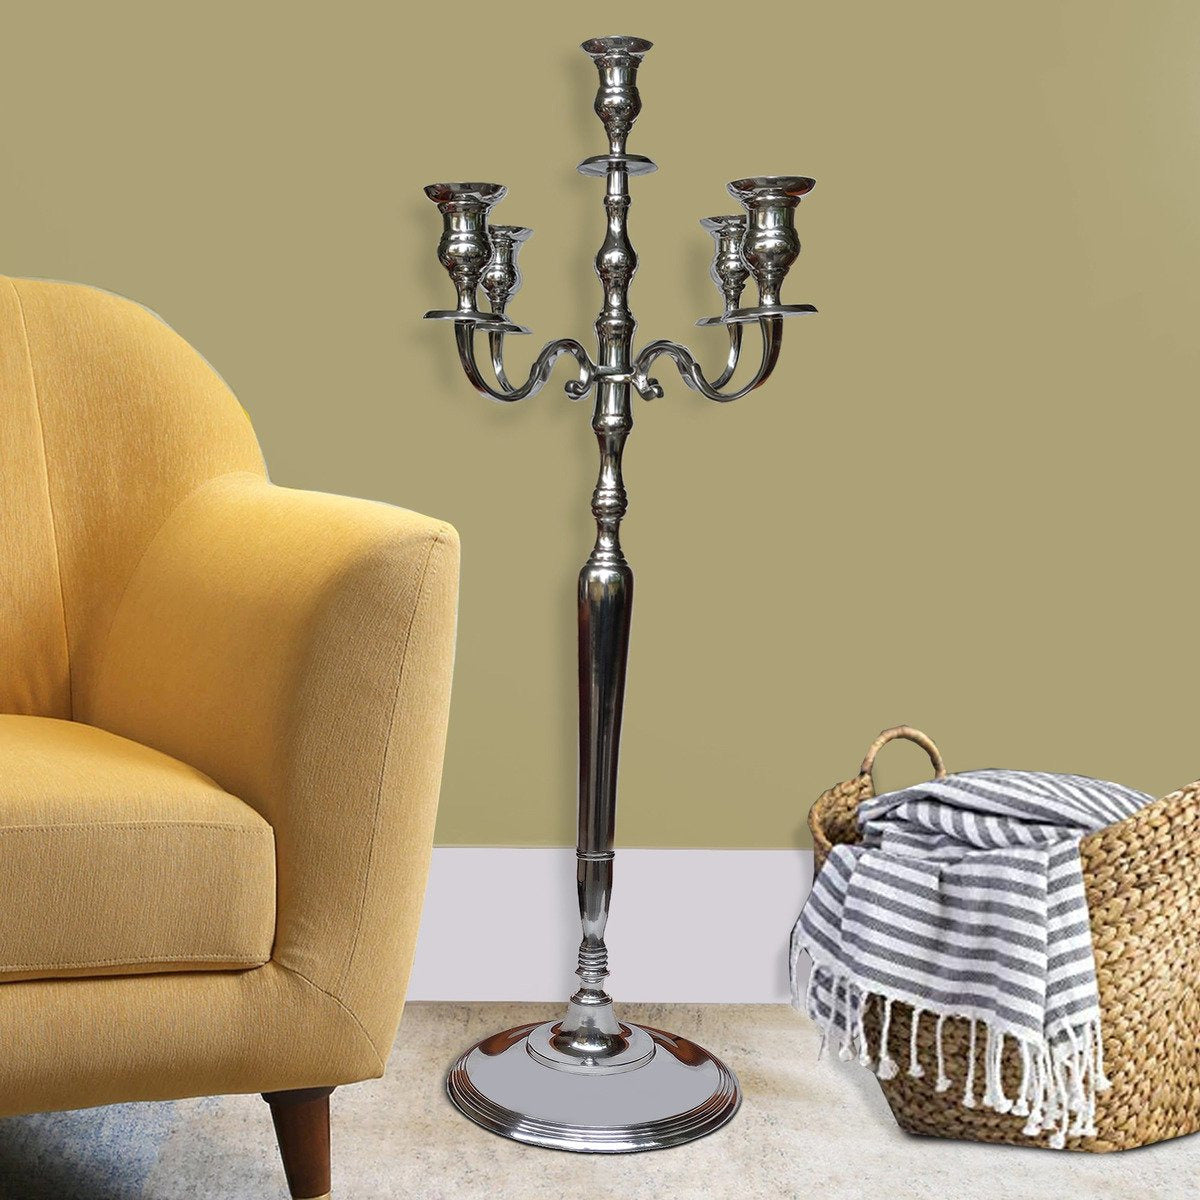 Candle & Votive Holder - 48 Inches Handcrafted 5 Arms Aluminum Candelabra With Fluted Top, Silver